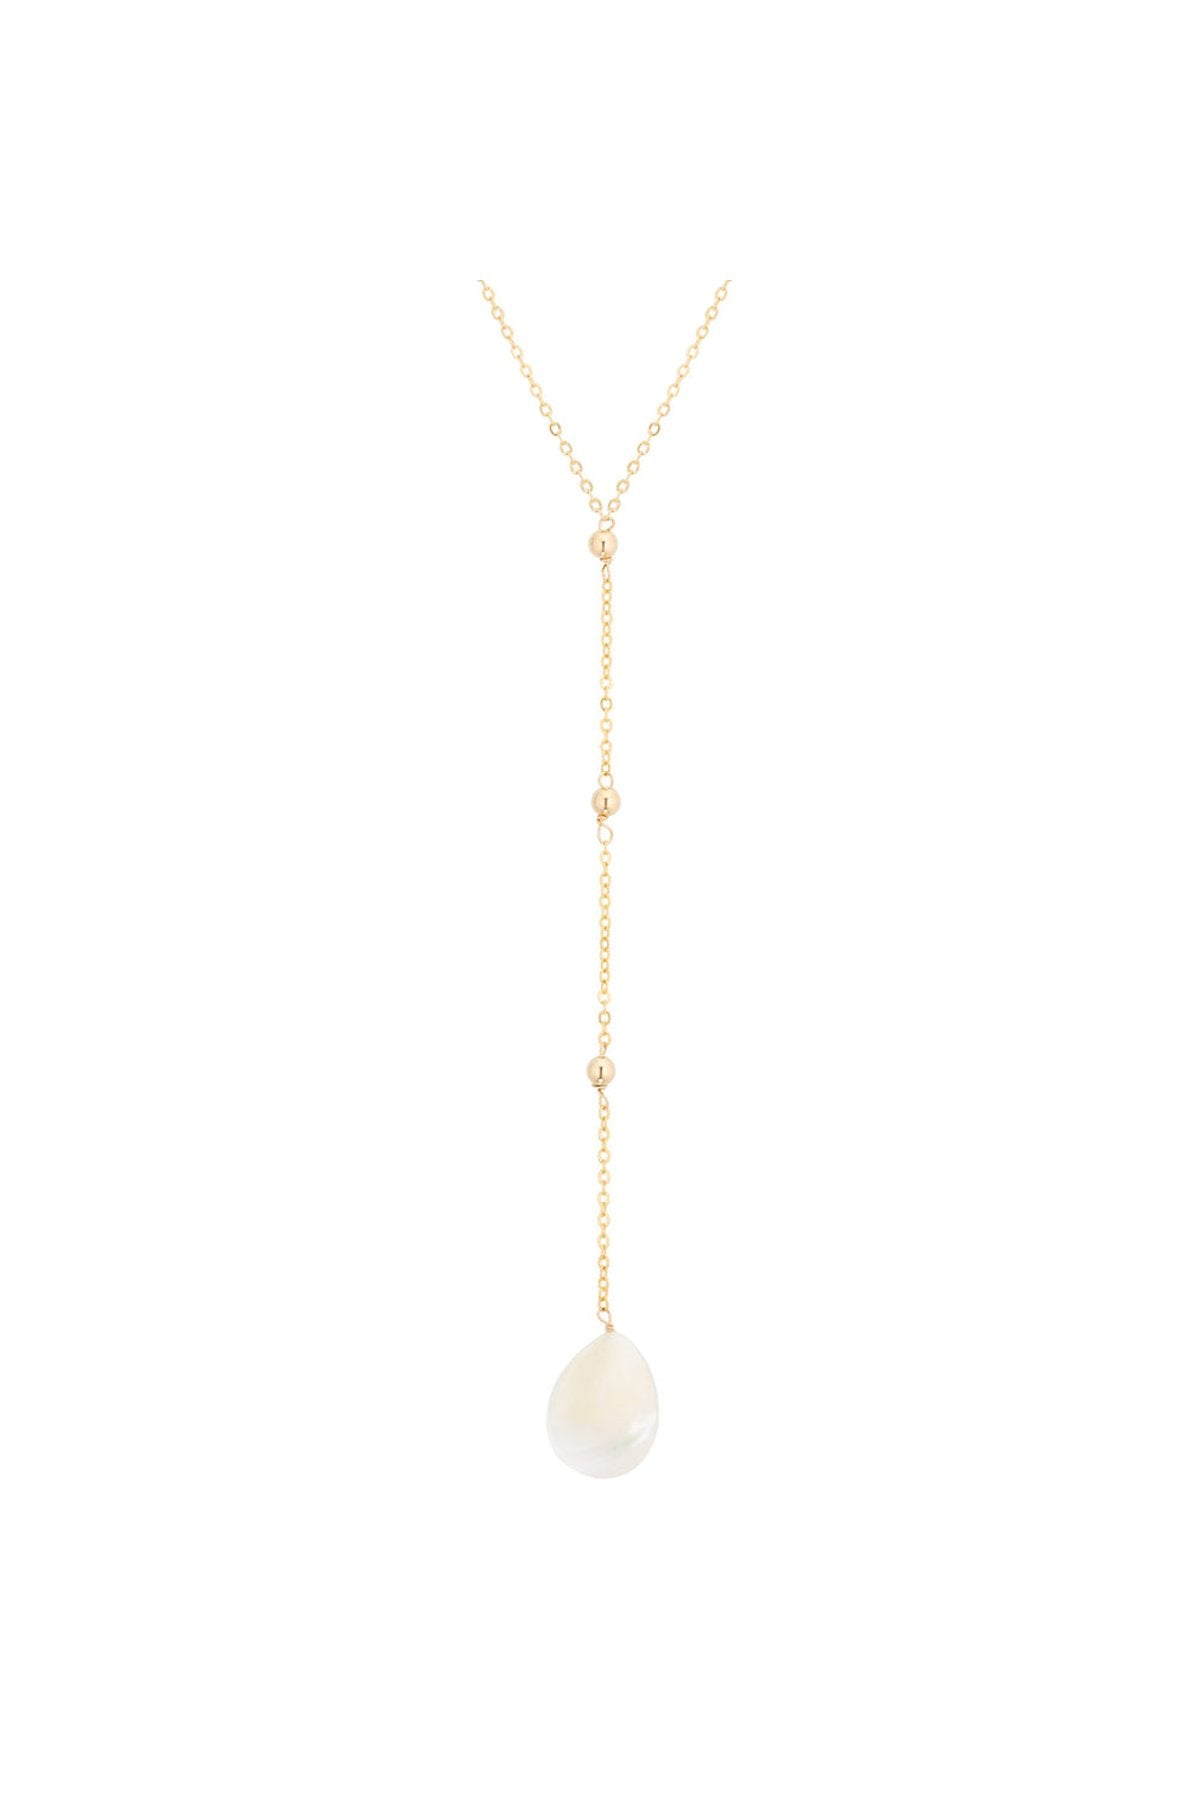 TAUDREY - Isla Necklace • Gold